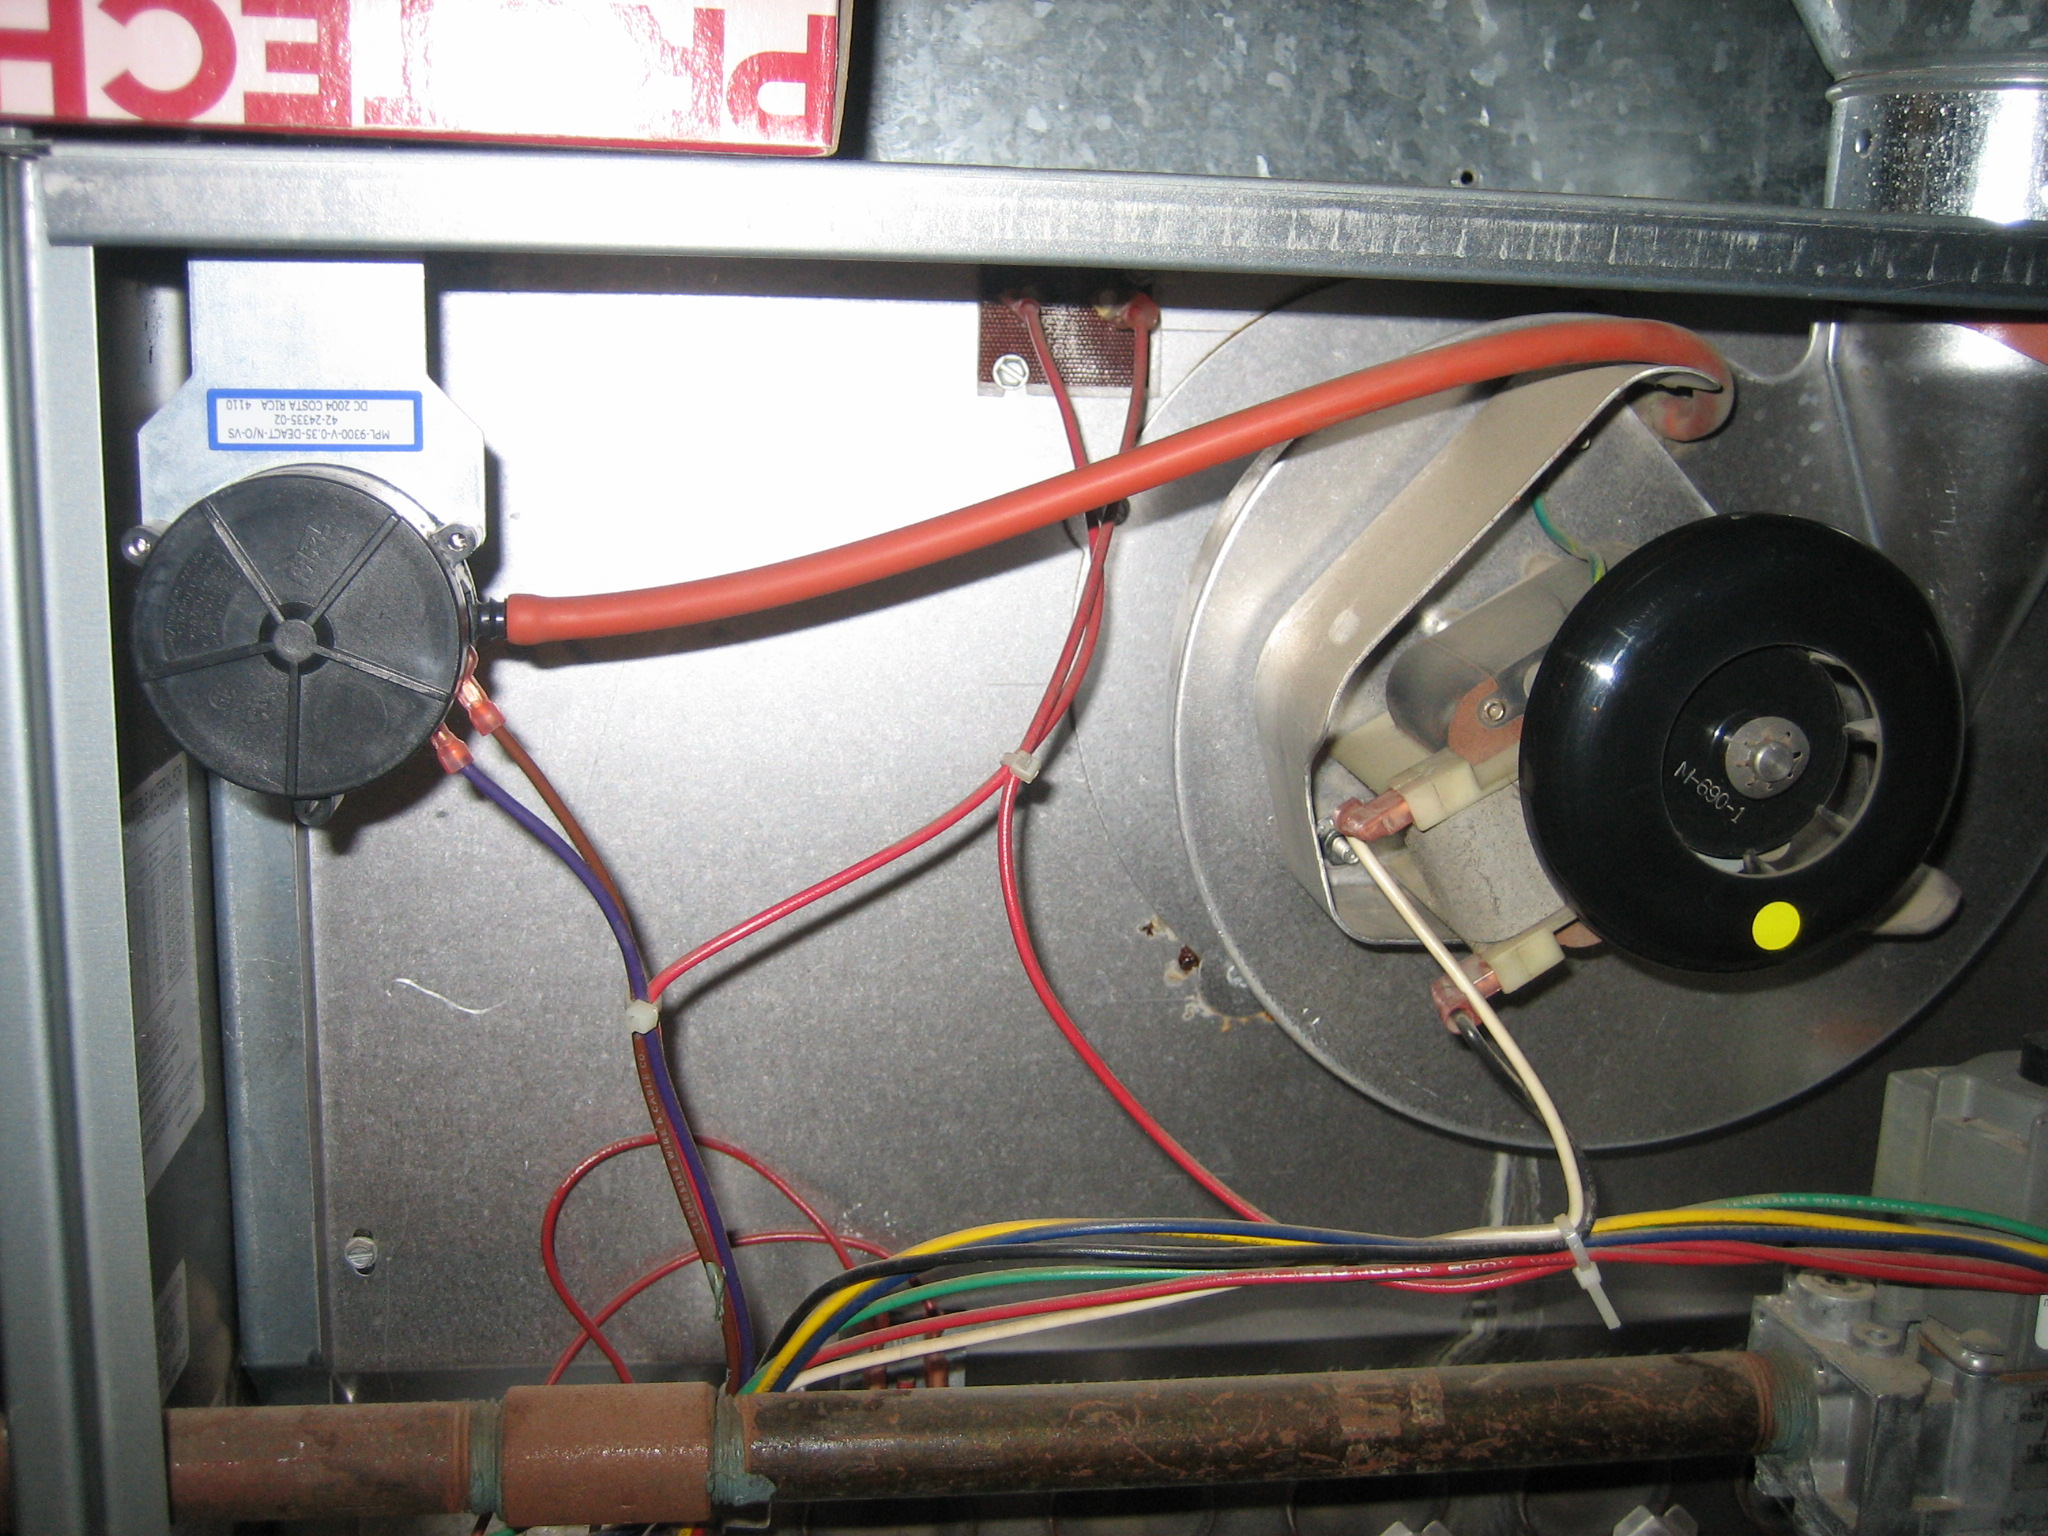 Chicago Condo Furnace Installation Most  mon Problems furthermore B1859000 Goodman Power Vent Motor 140 Hp 3000 Rpm B1859000 Goodman moreover Armstrong Sx90 Furnace Parts Diagram together with Weil Mclain Boiler Manual Diagram besides Honeywell Wiring Your Home. on gas furnace draft motor